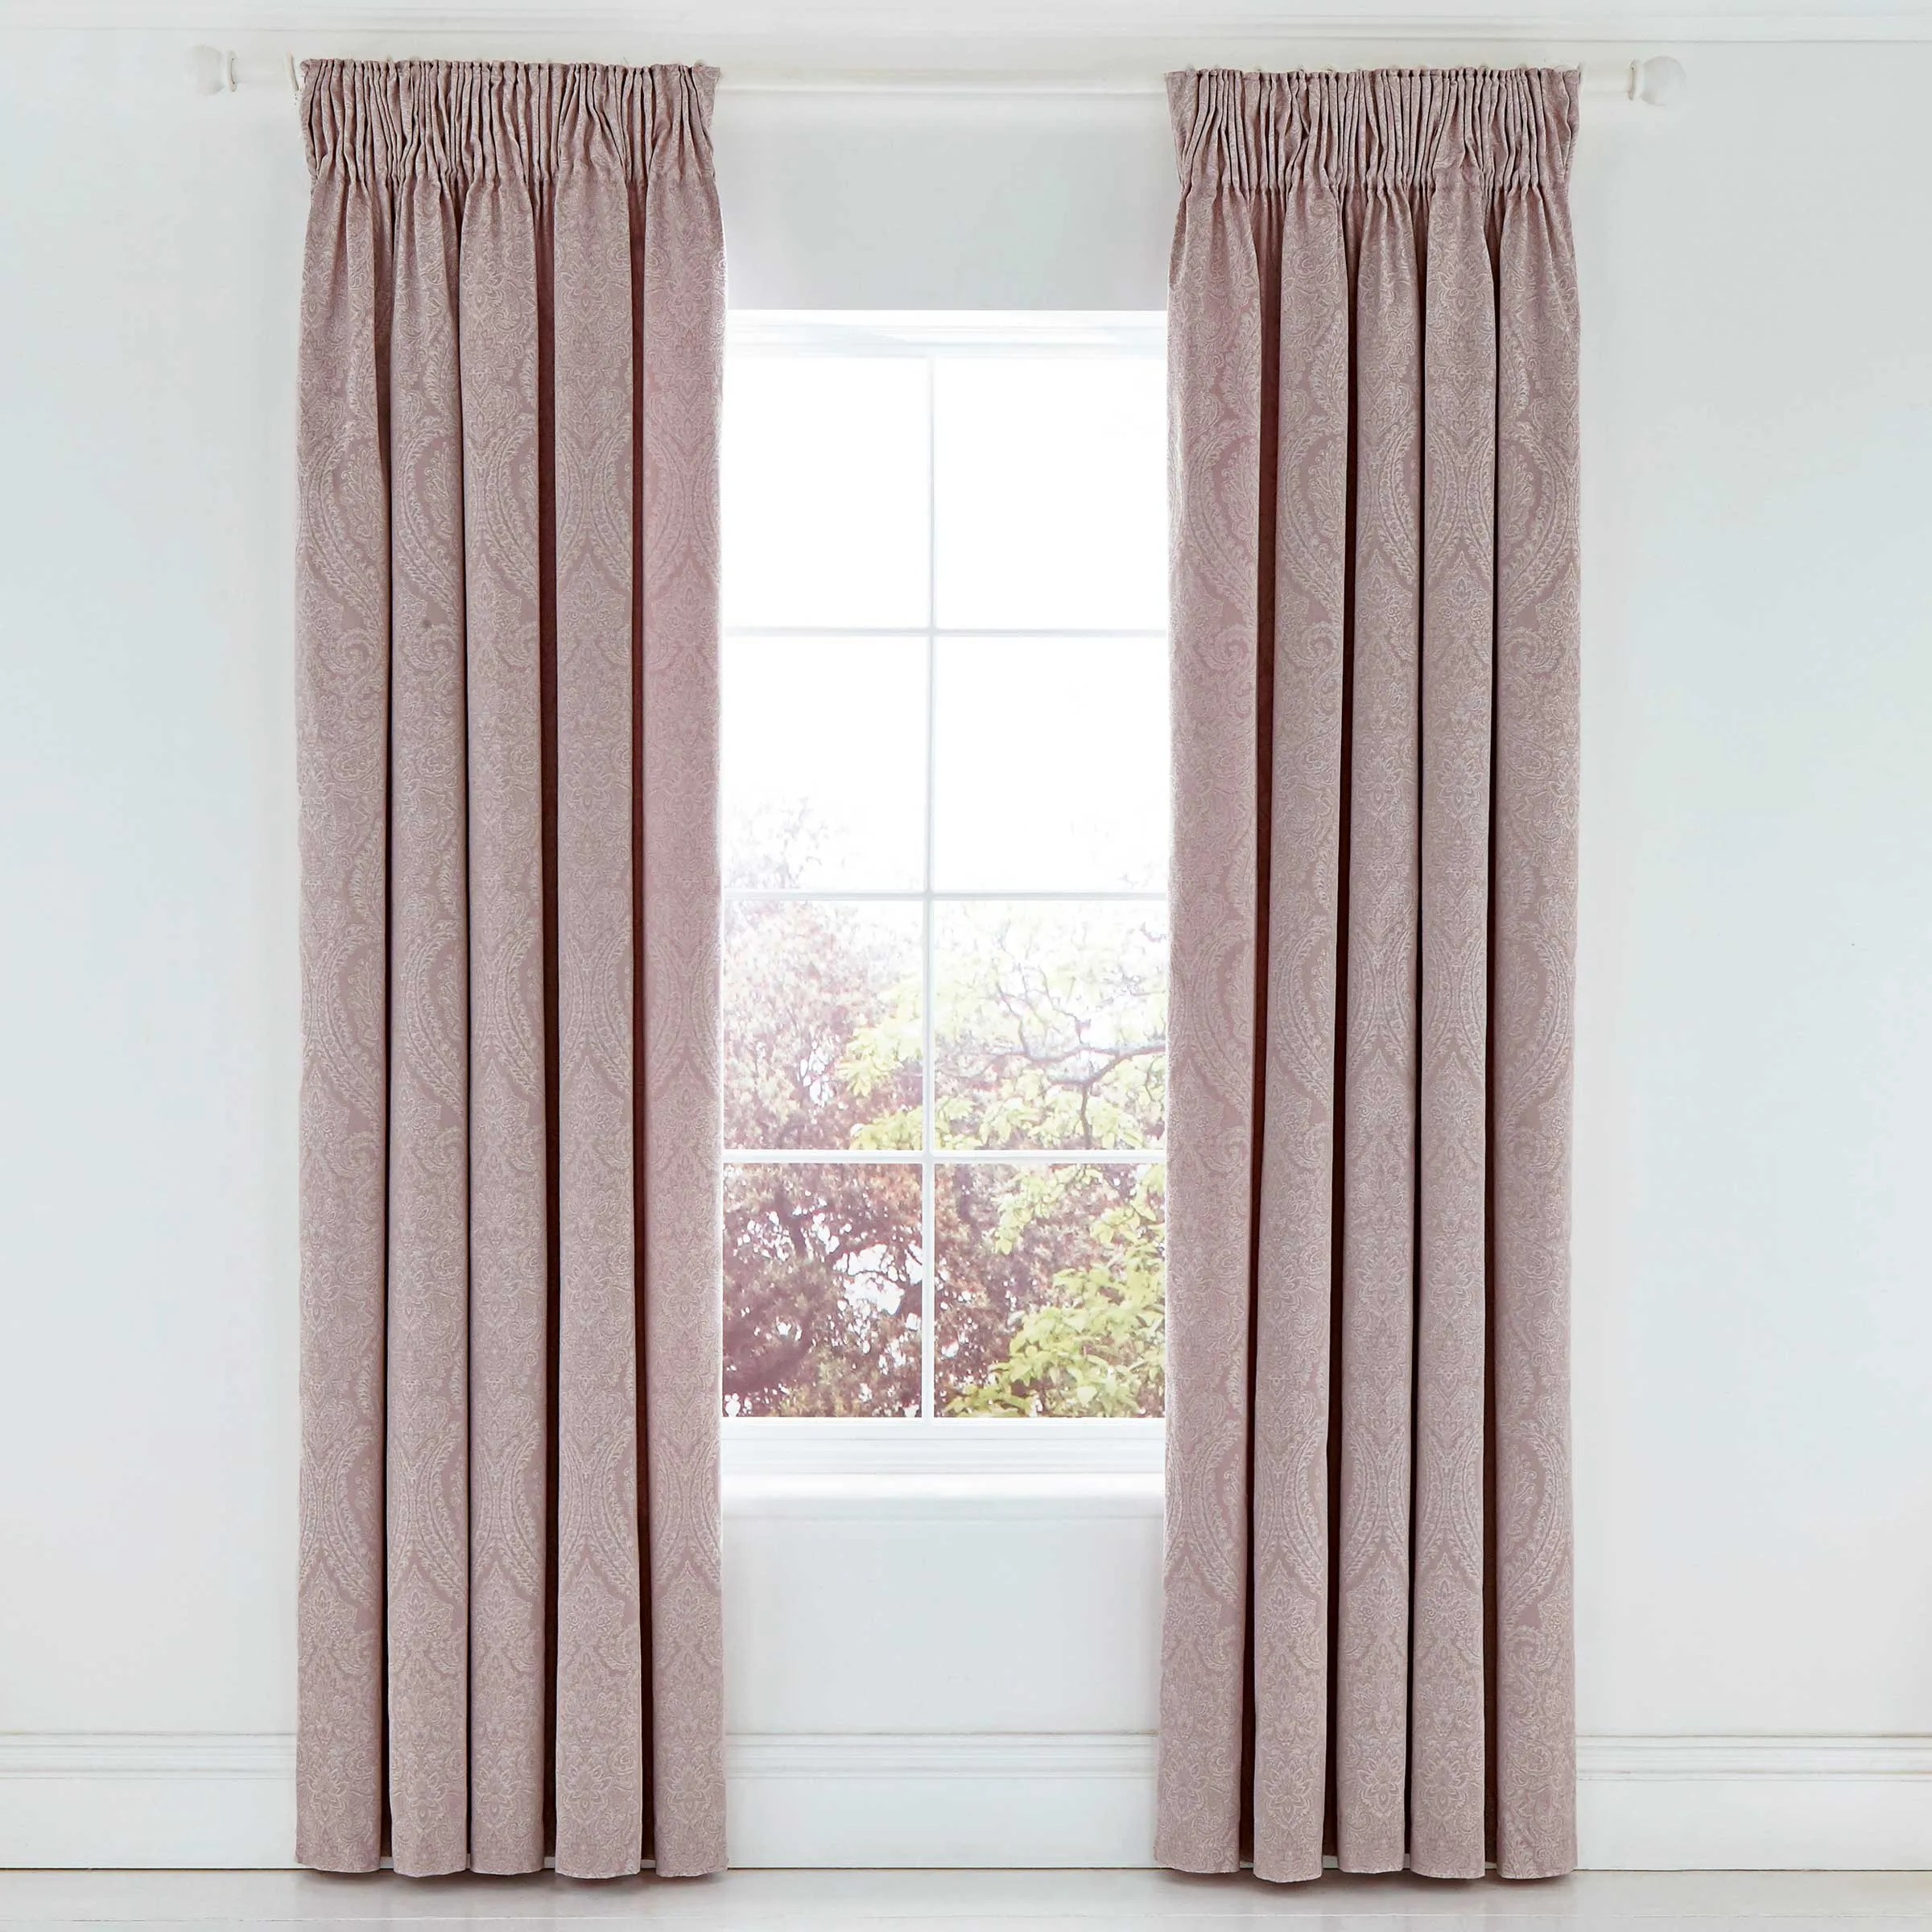 Cheap Curtains Online Cotton Velvet Curtains Shop For Cheap Products And Save